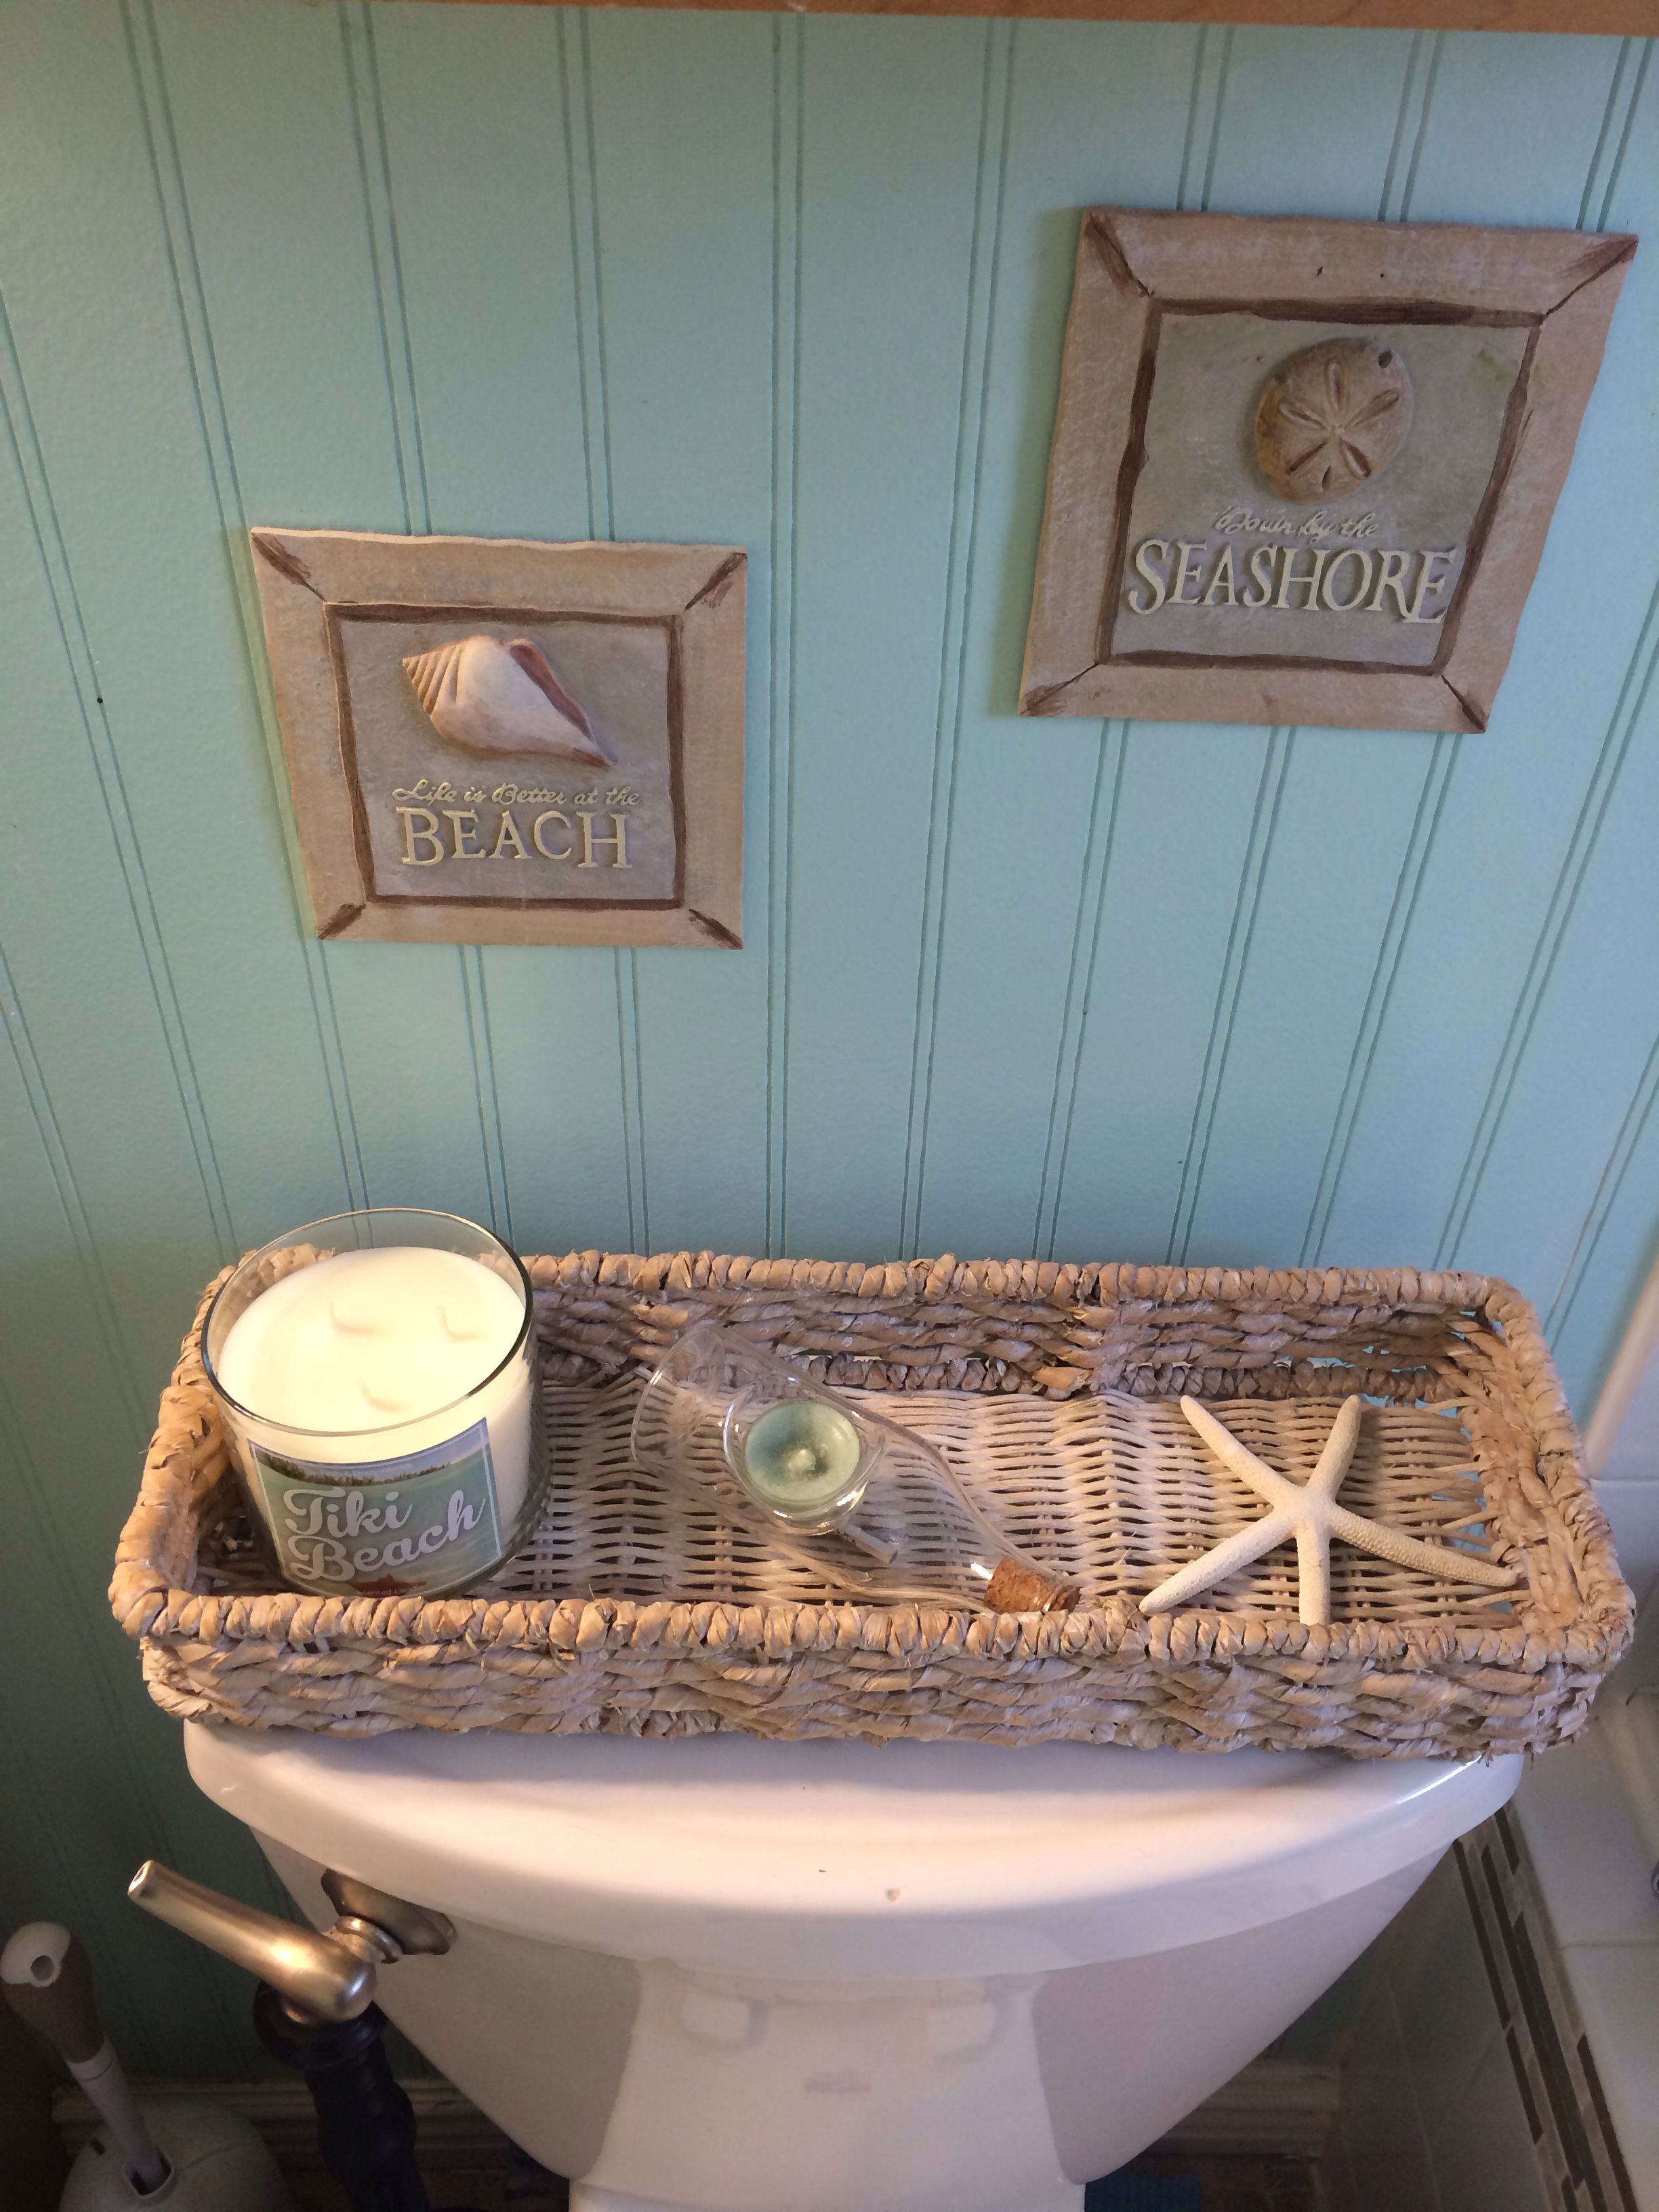 Nice And Different For The Top Of The Toilet Tank Toilet Tank Beach House Decor Bathroom Decor